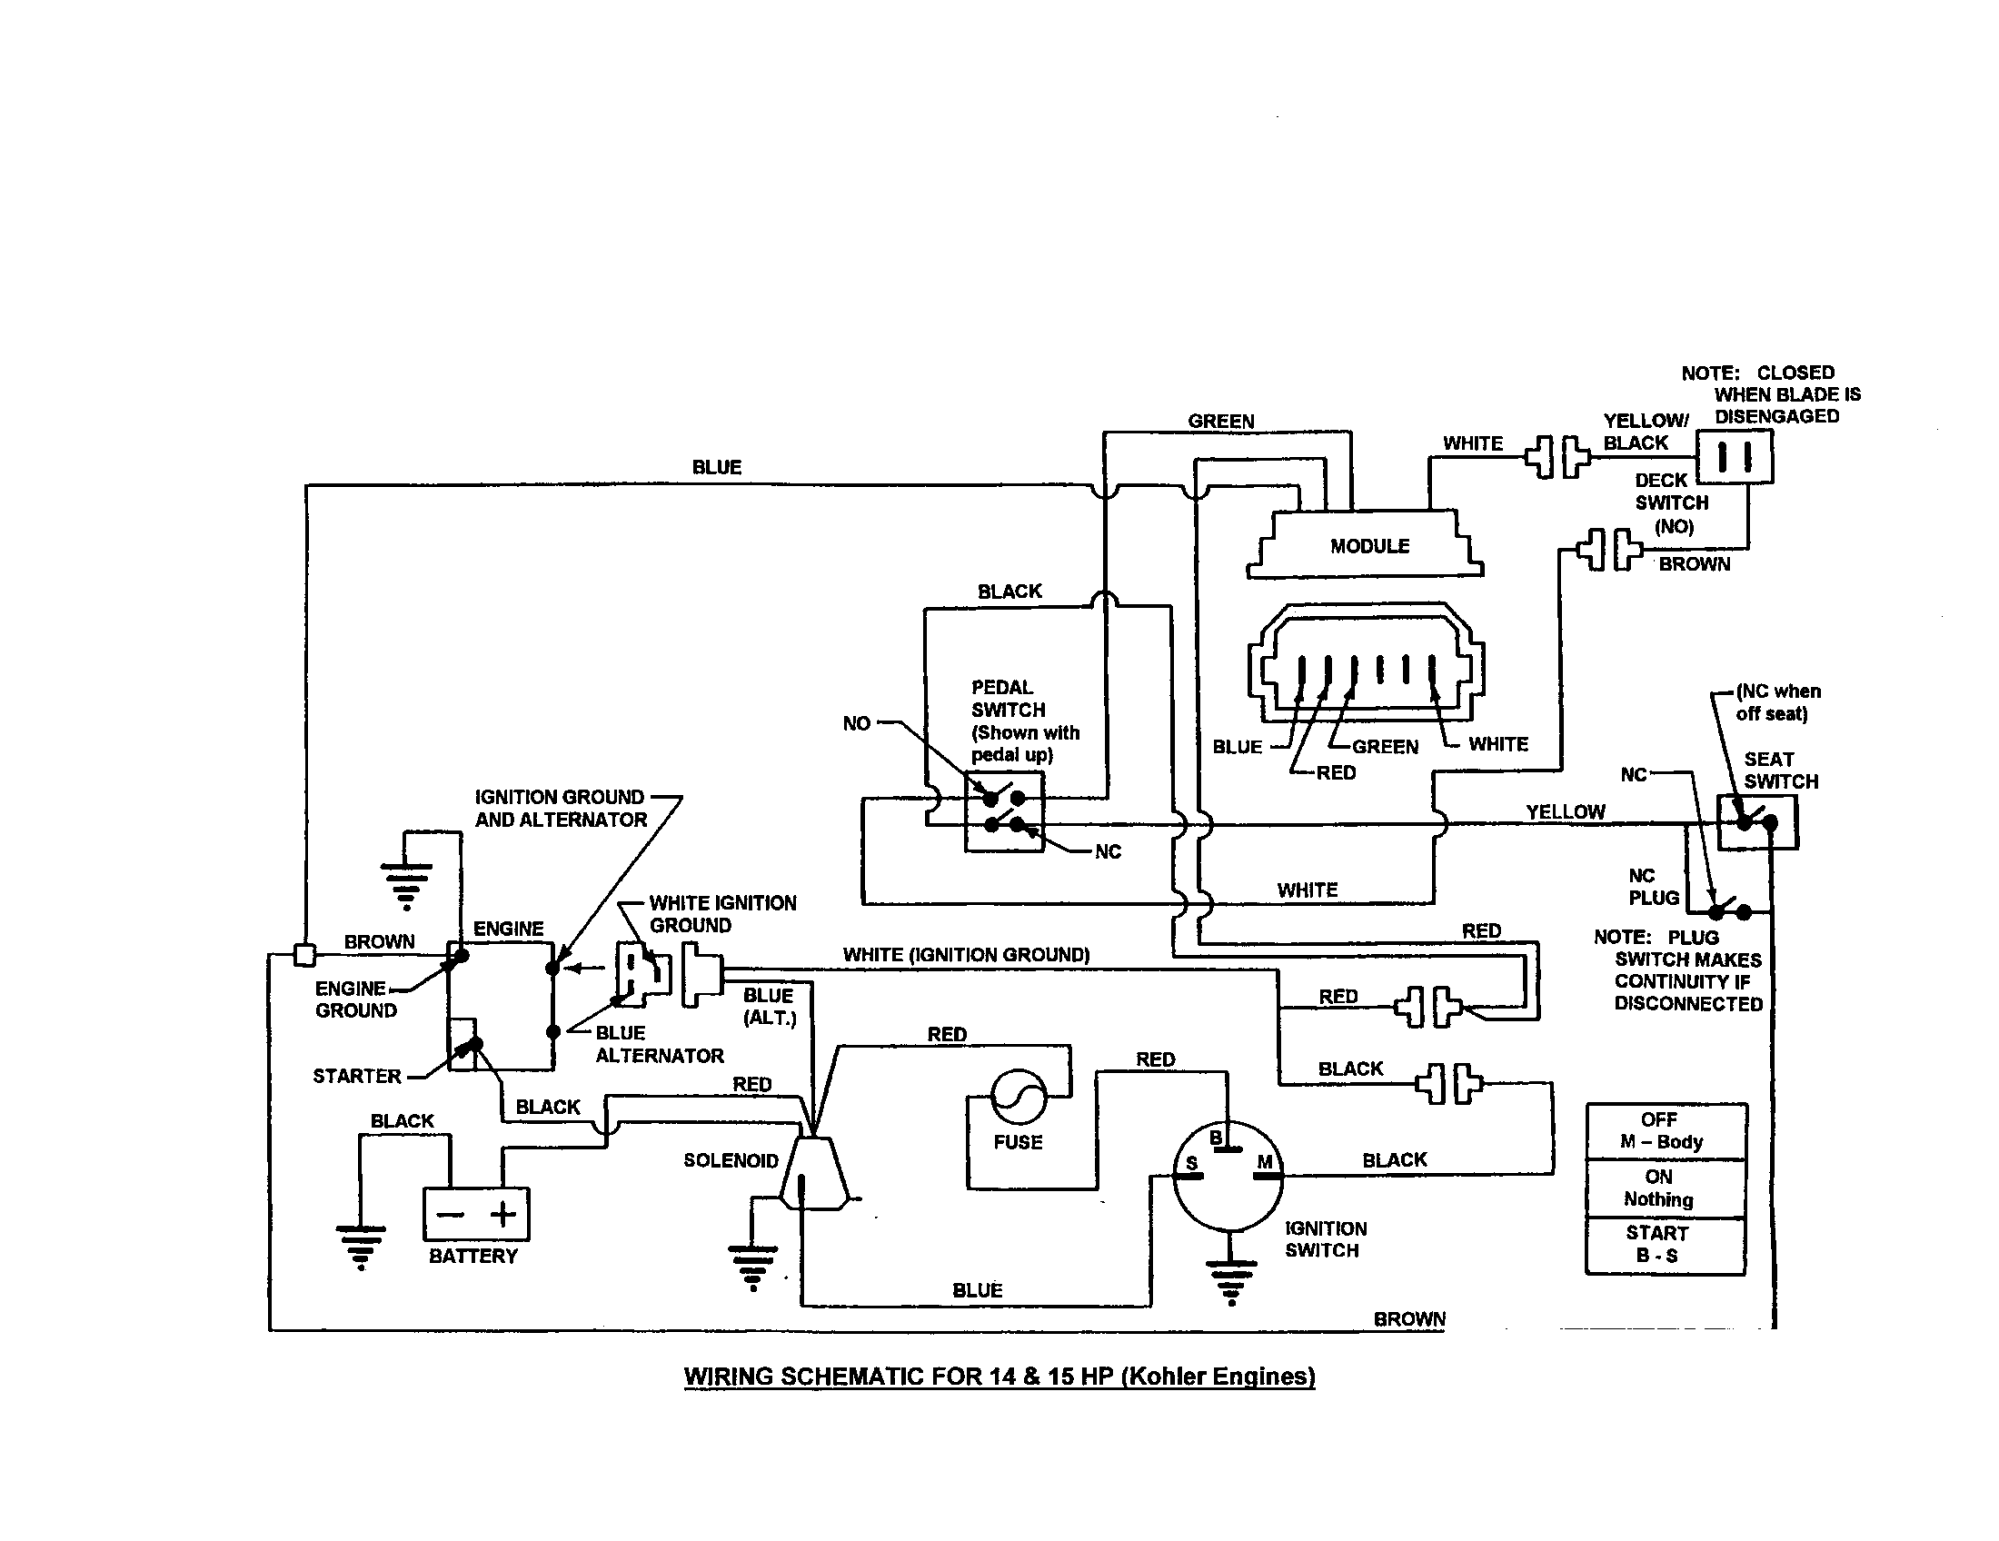 hight resolution of kohler wire diagram wiring diagram blog kohler command 20 hp wiring diagram 20 hp kohler wiring diagram